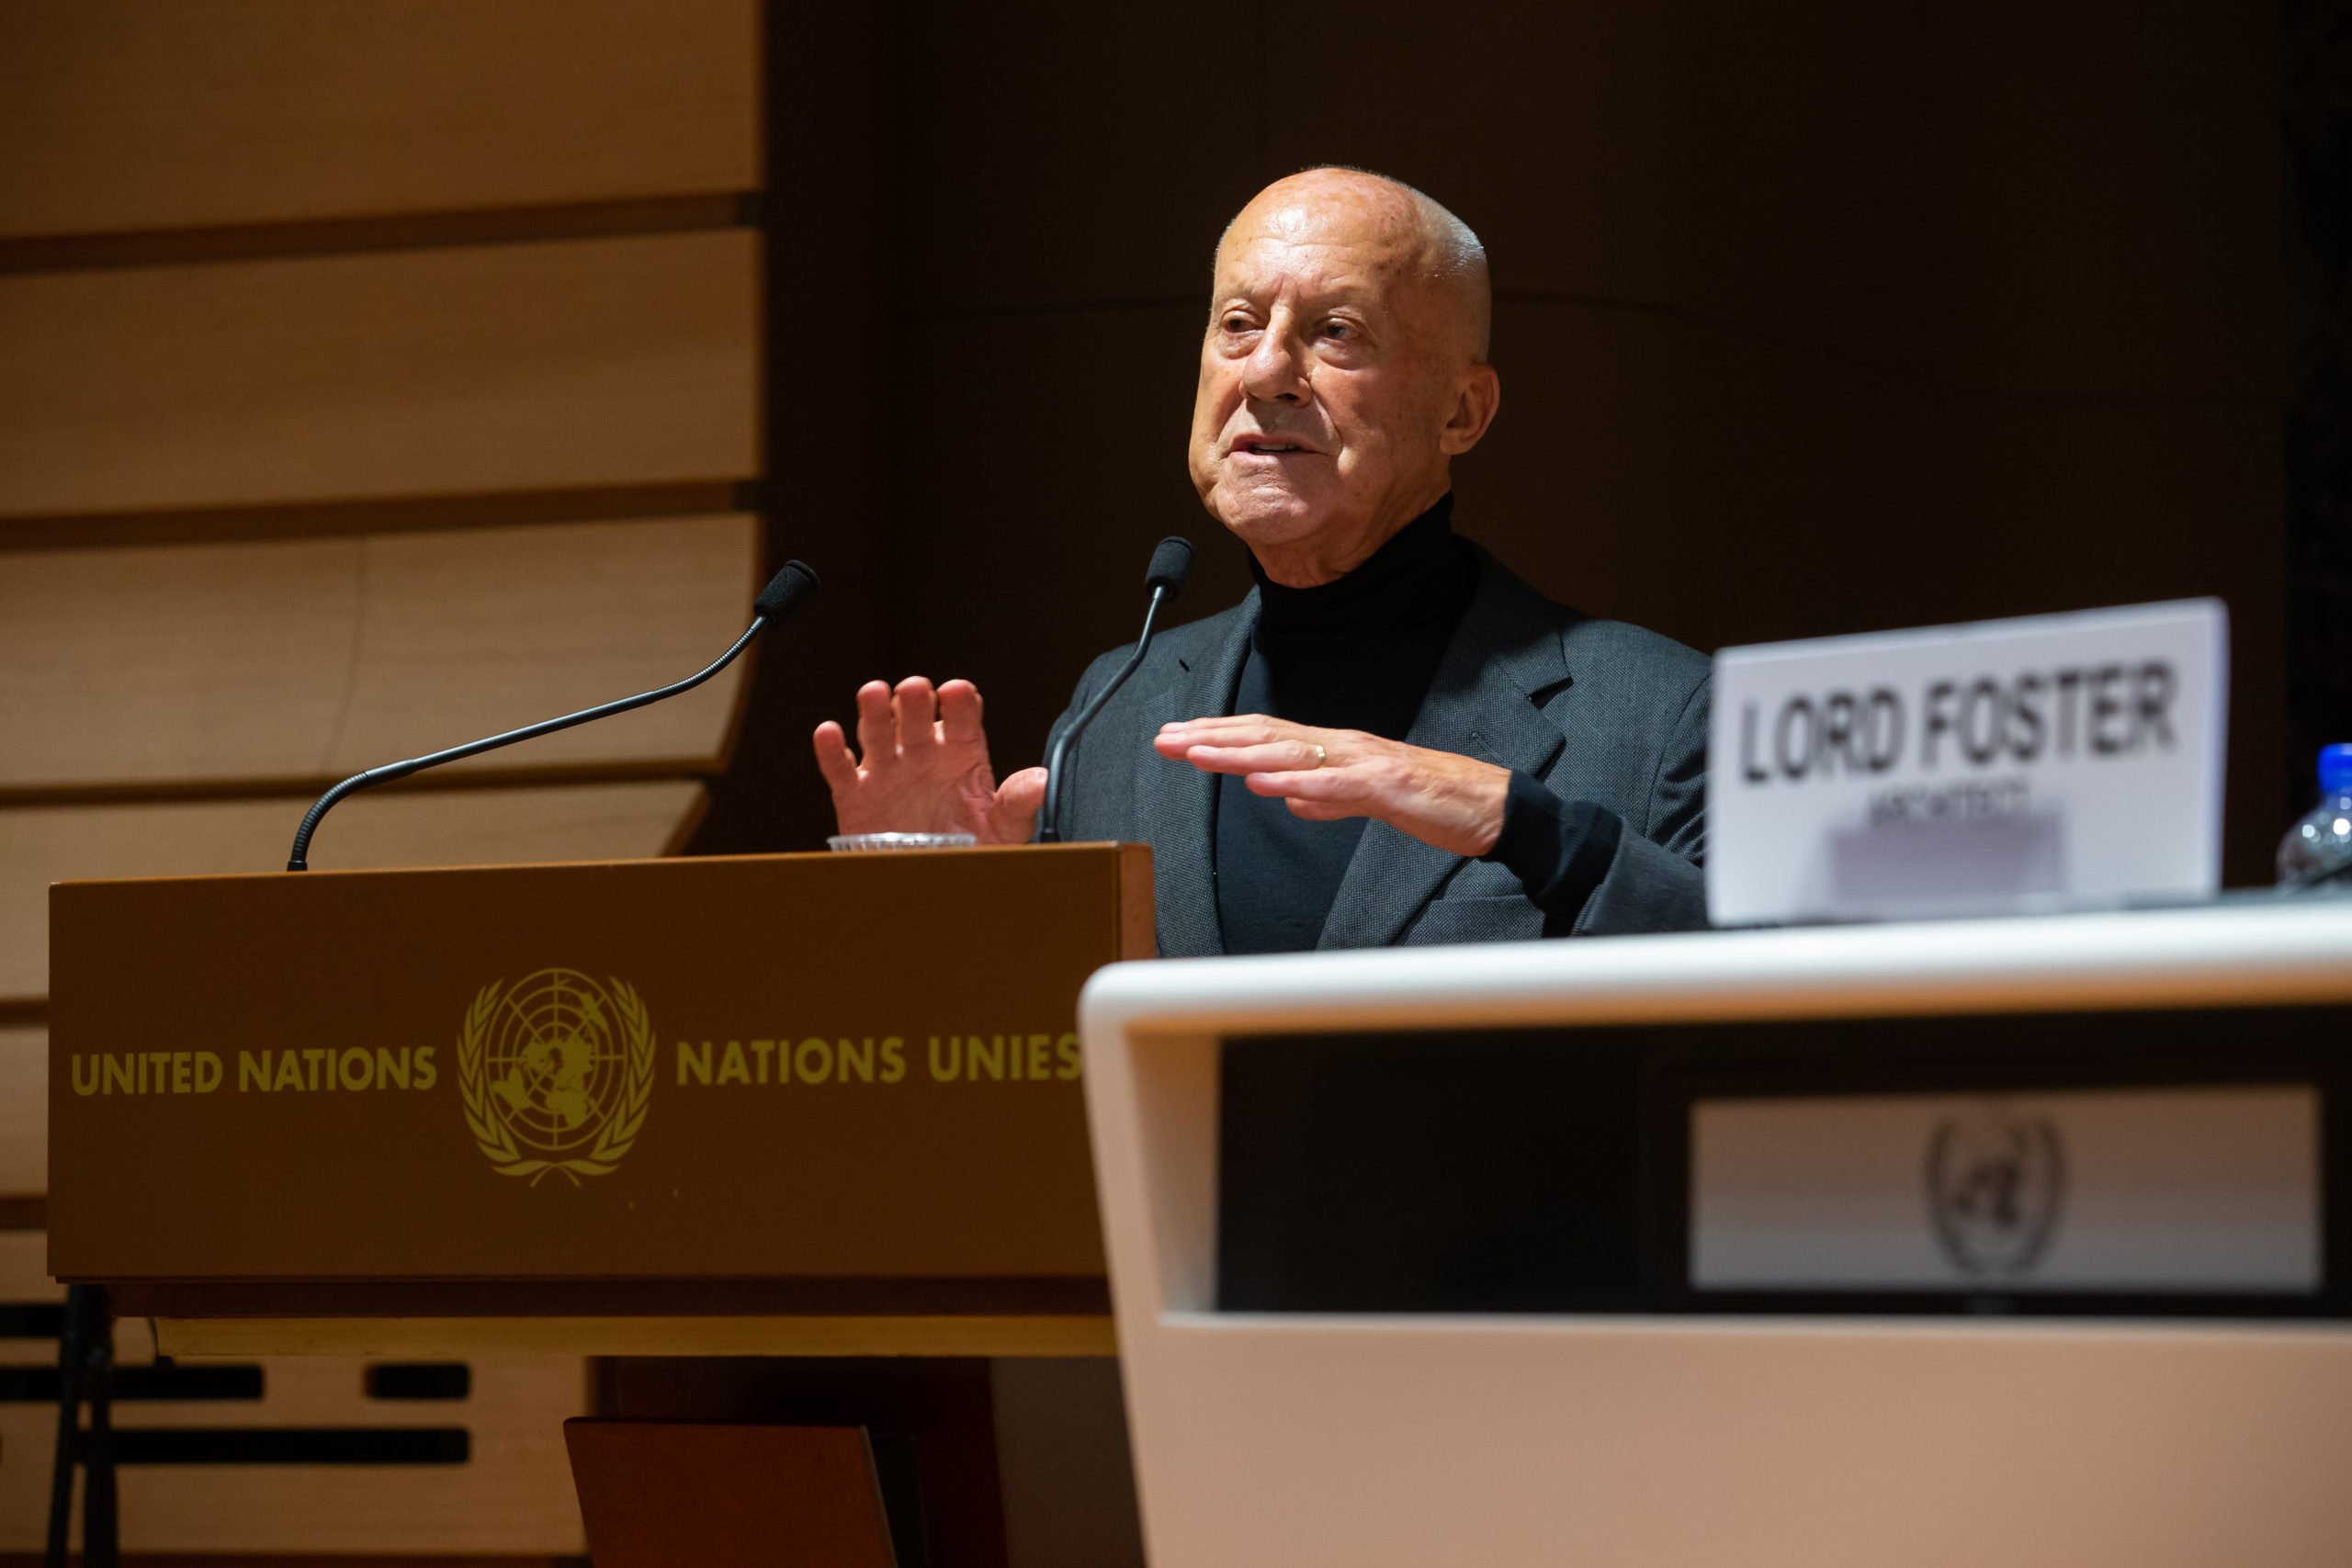 Lord Foster addressing A message to Mayors, during the Forum of Mayors 2020. Palais des Nations, October 6, 2020. © Photo UNECE/Pierre Albouy